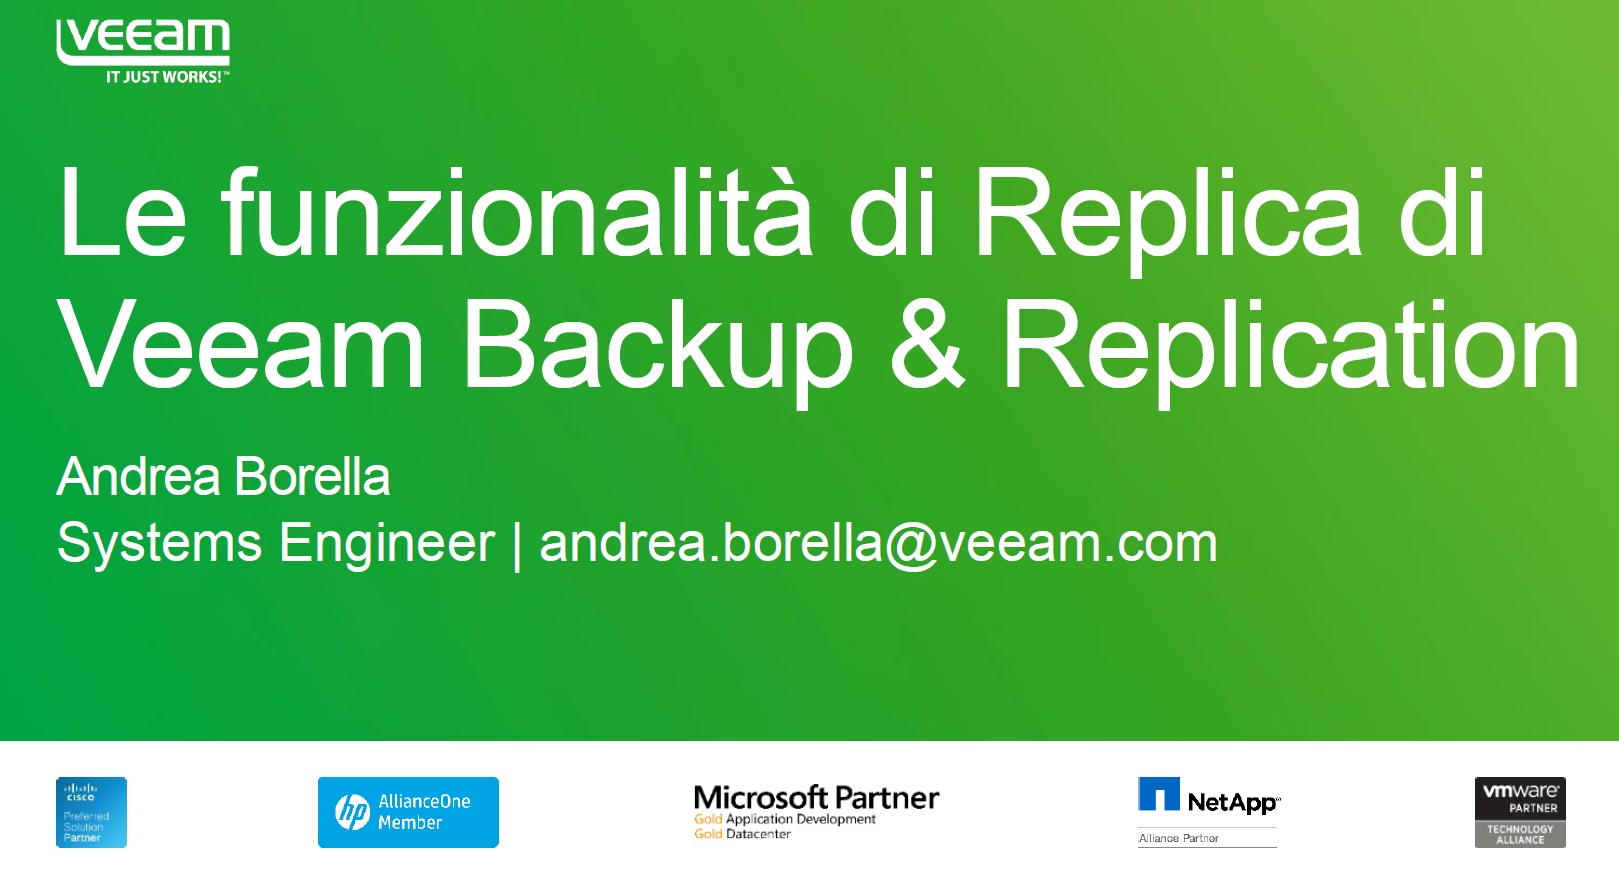 Pausa caffè con Veeam – Le funzionalità di replica di Veeam Backup & Replication e Failover plan